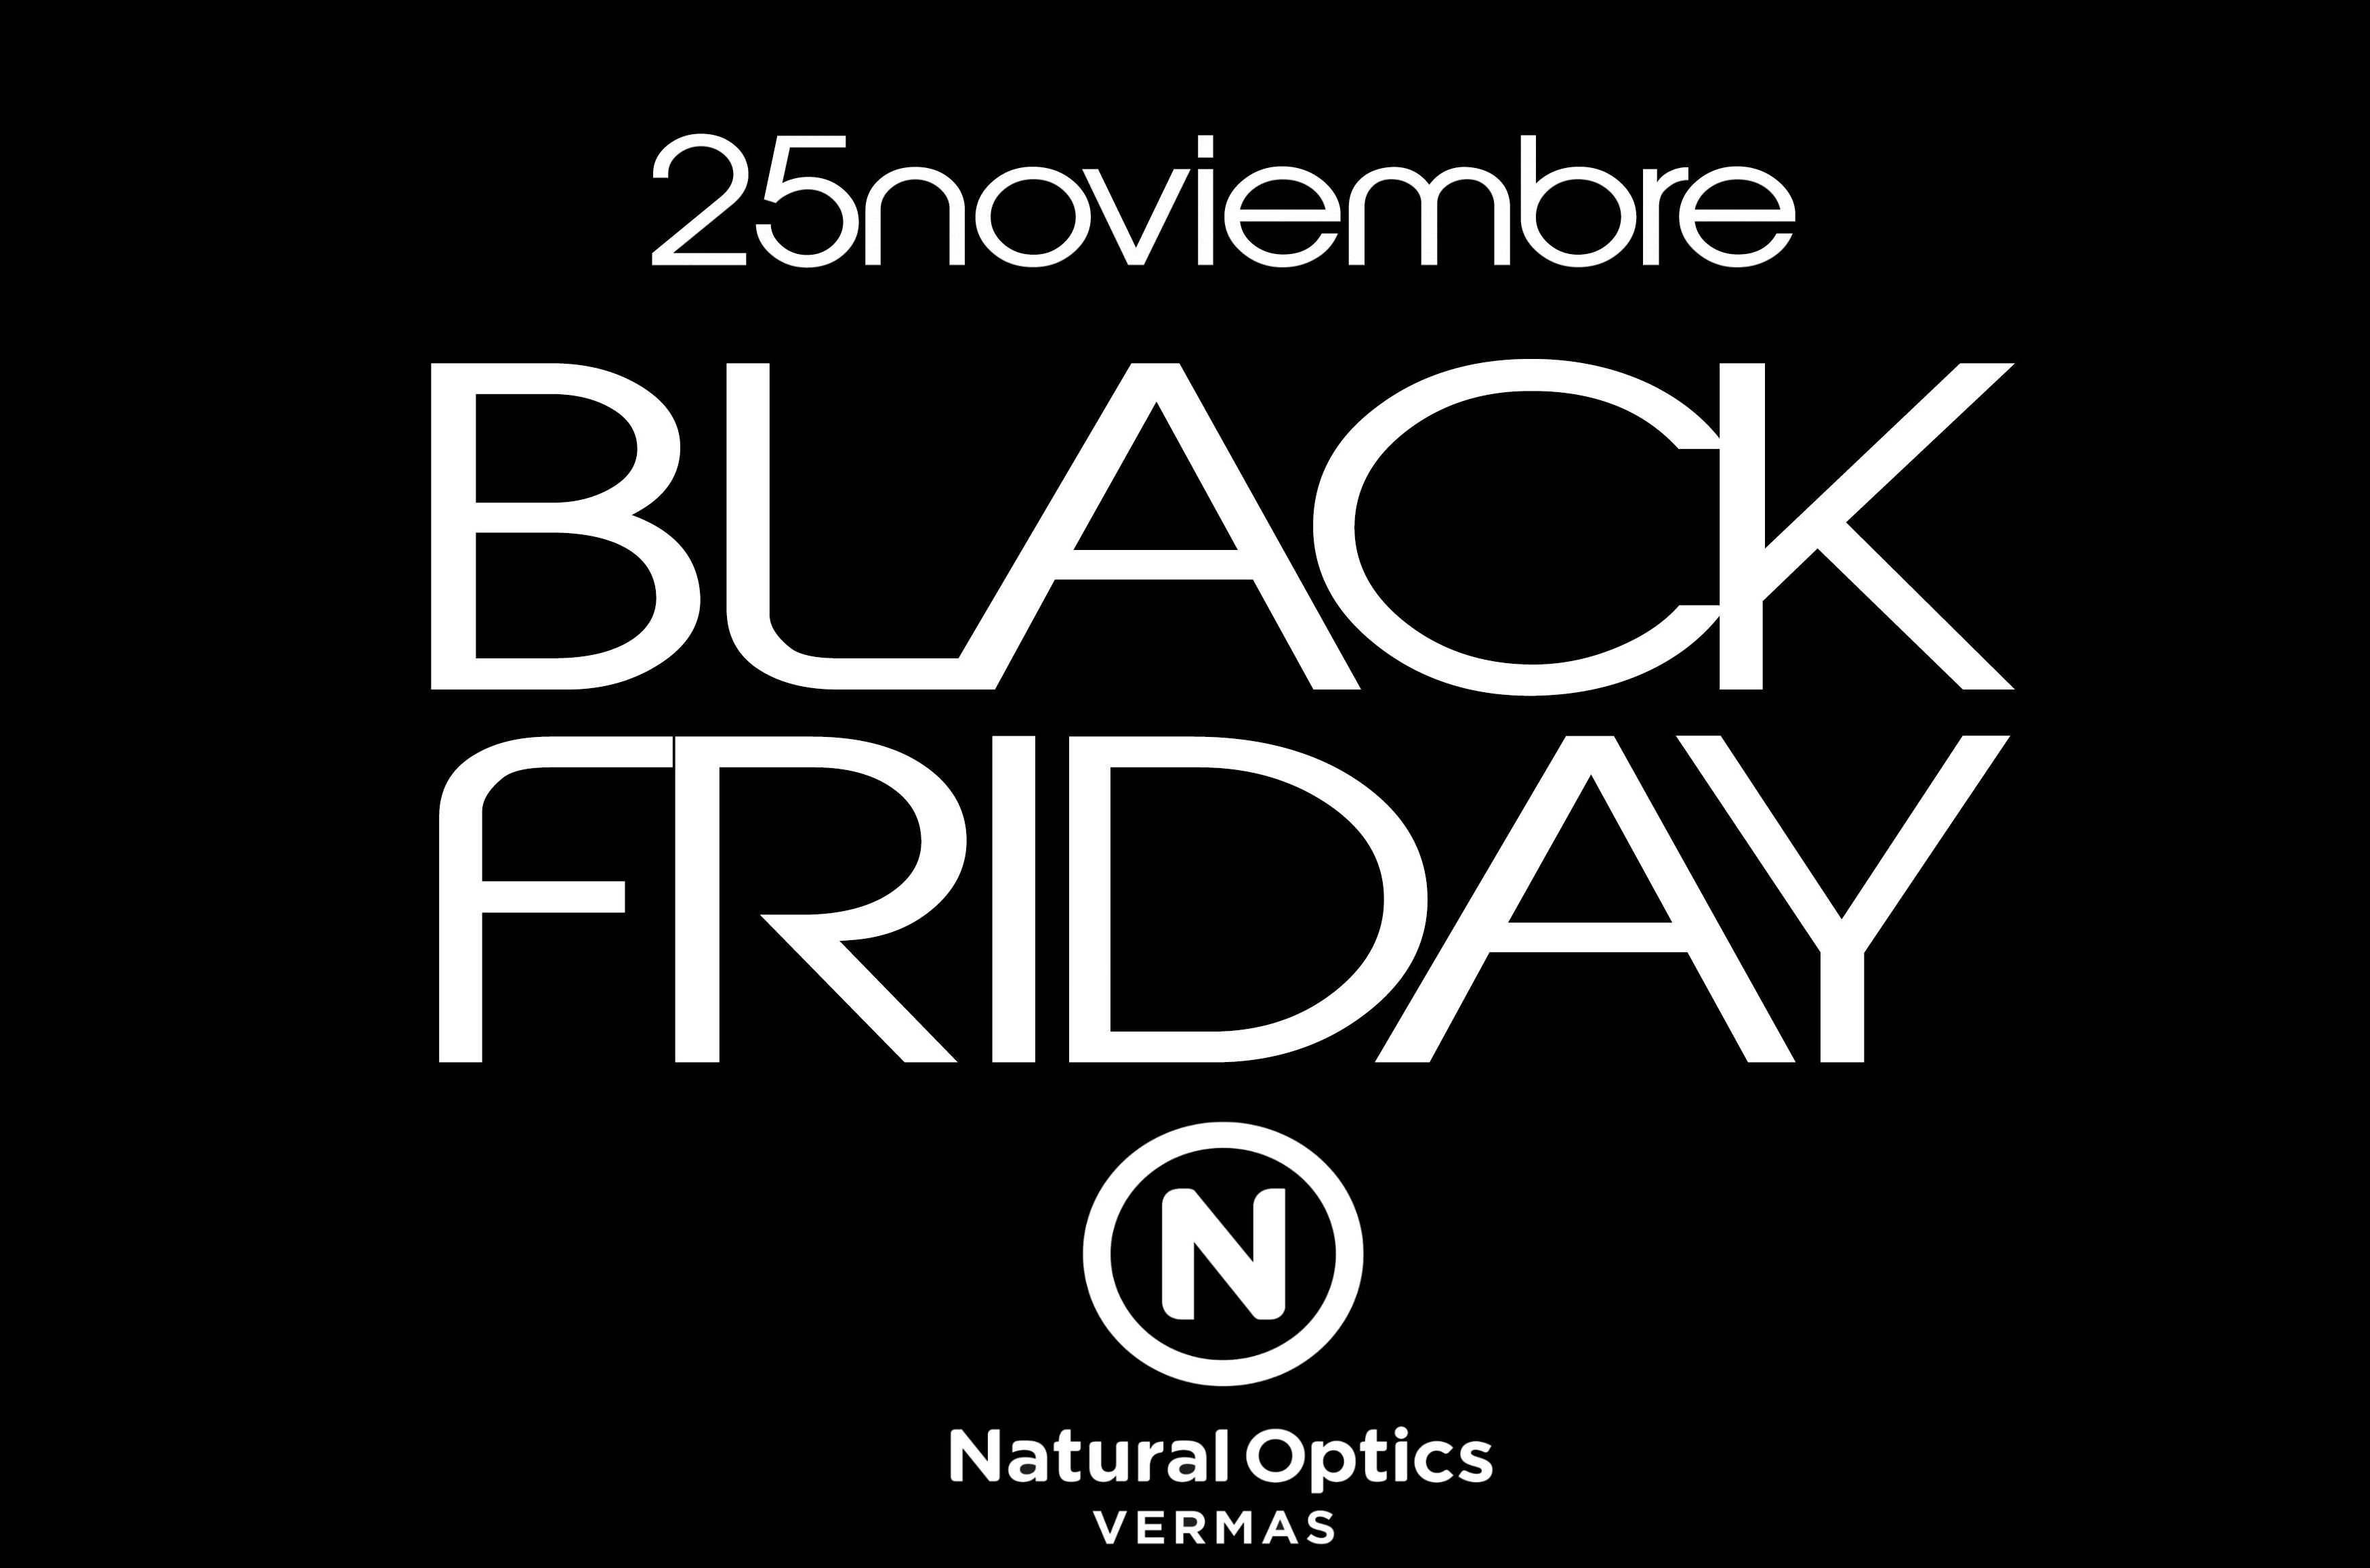 Black Friday en La Gomera